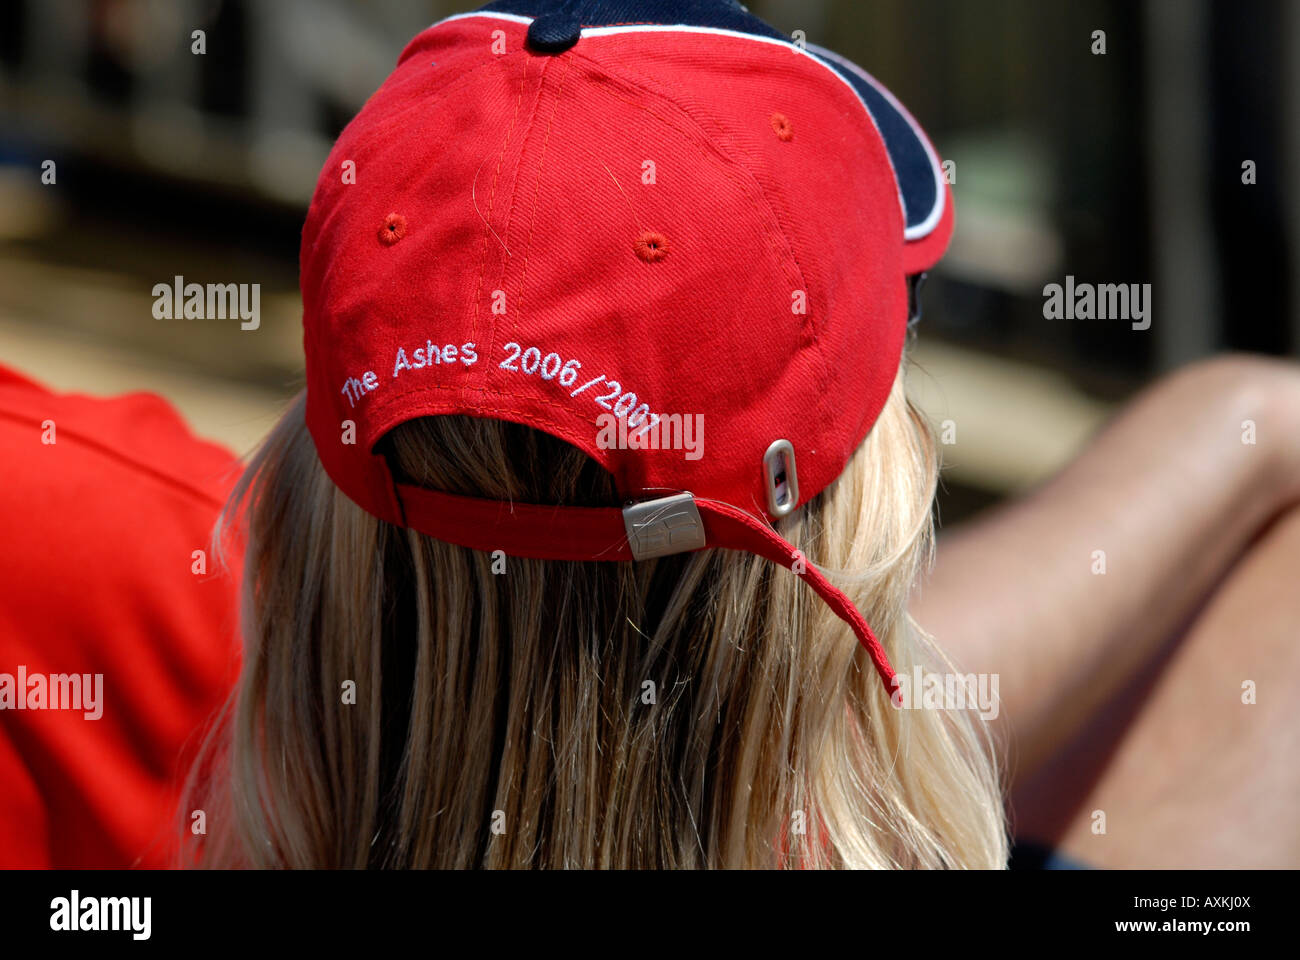 887c1200 Rear view of female England fan at Test Cricket match, wearing hat with  English colours